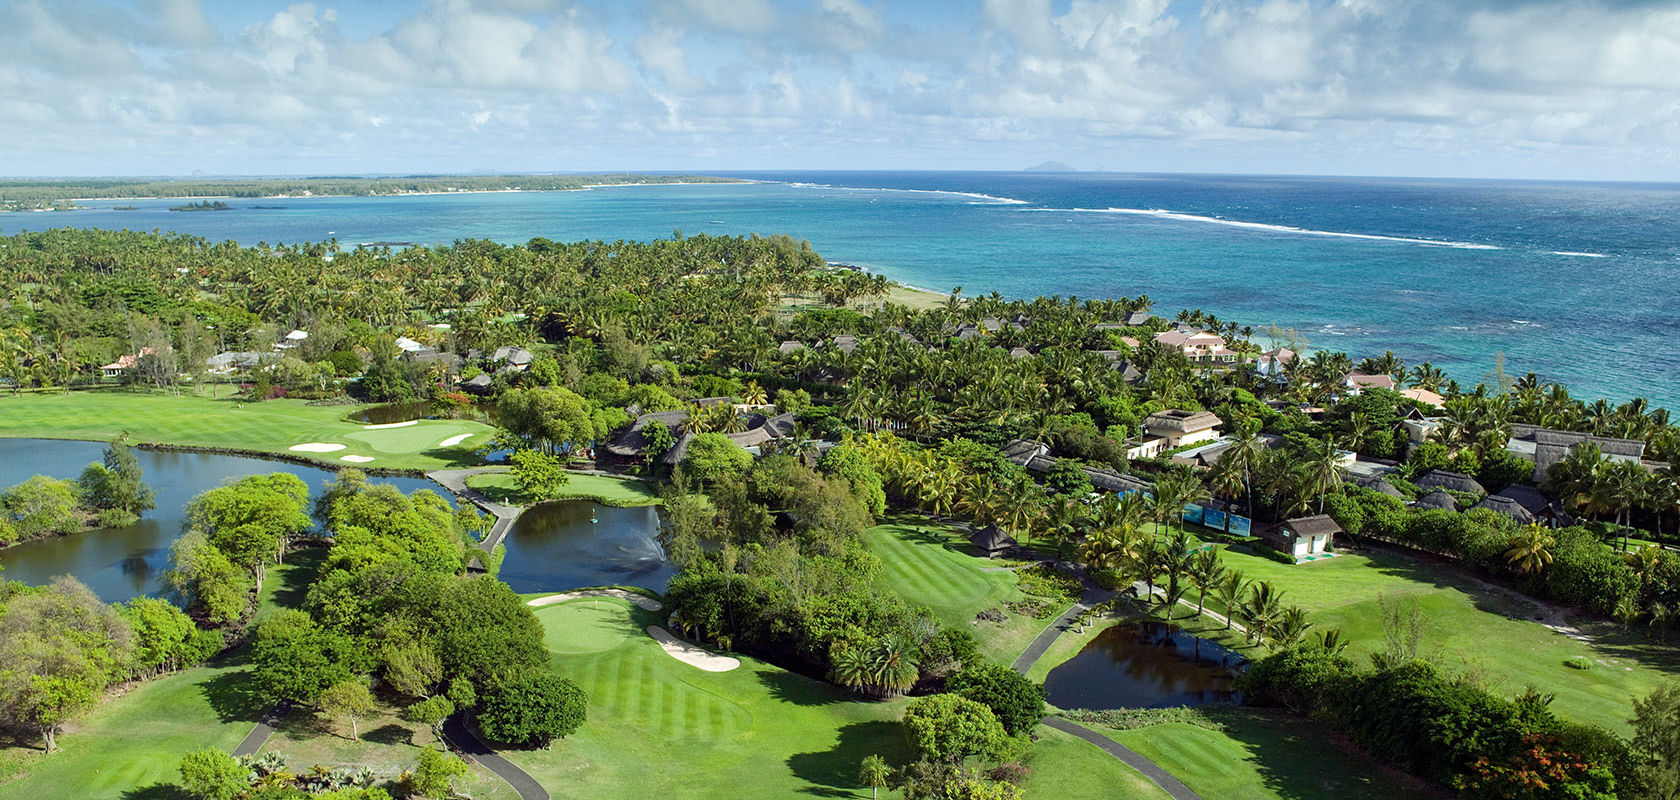 Constance hotel and resort legend golf course cover picture